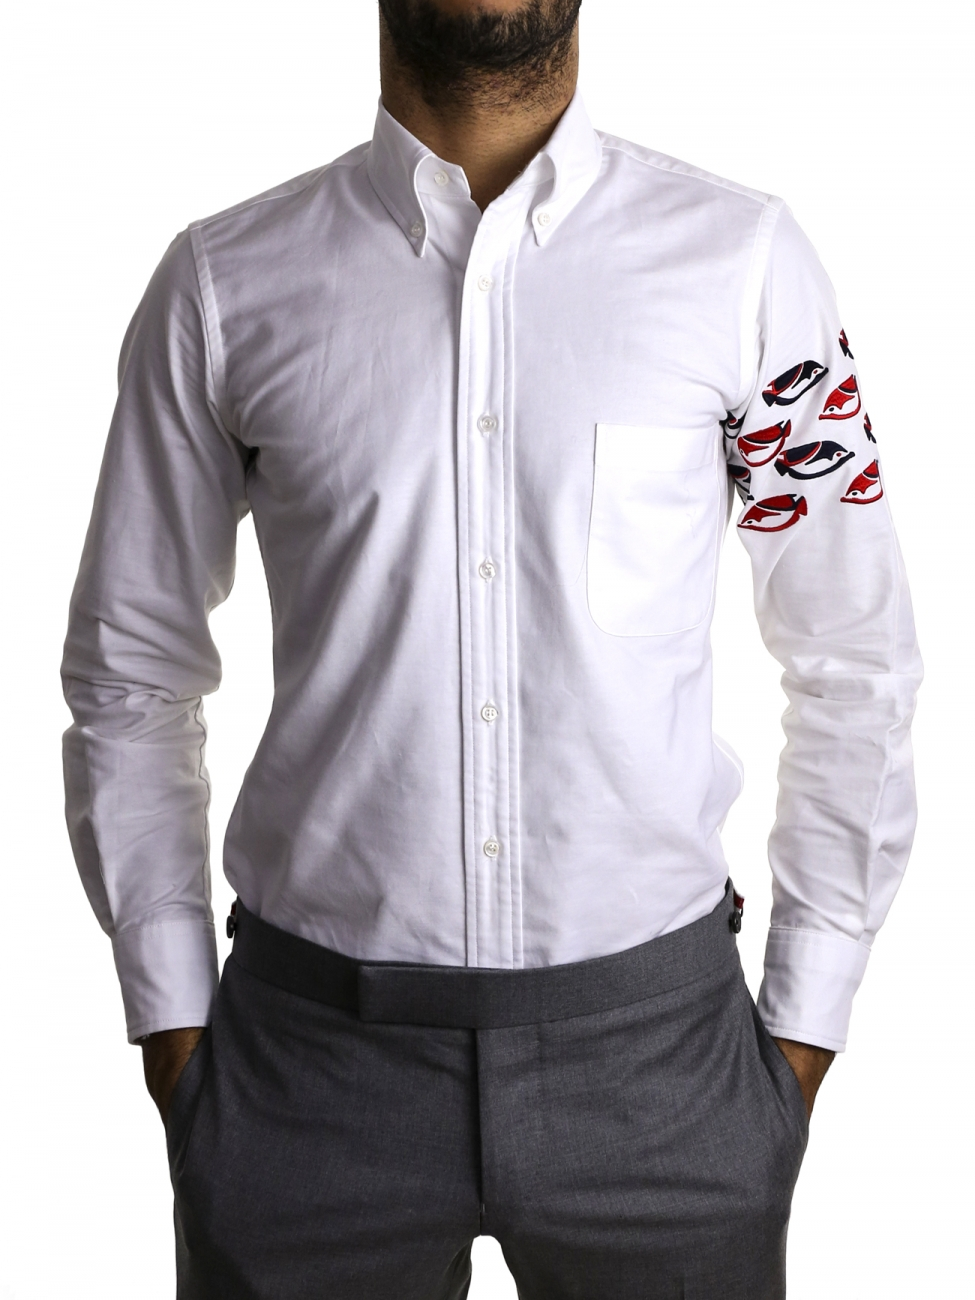 Thom browne white cotton shirt in white for men lyst for Thom browne white shirt